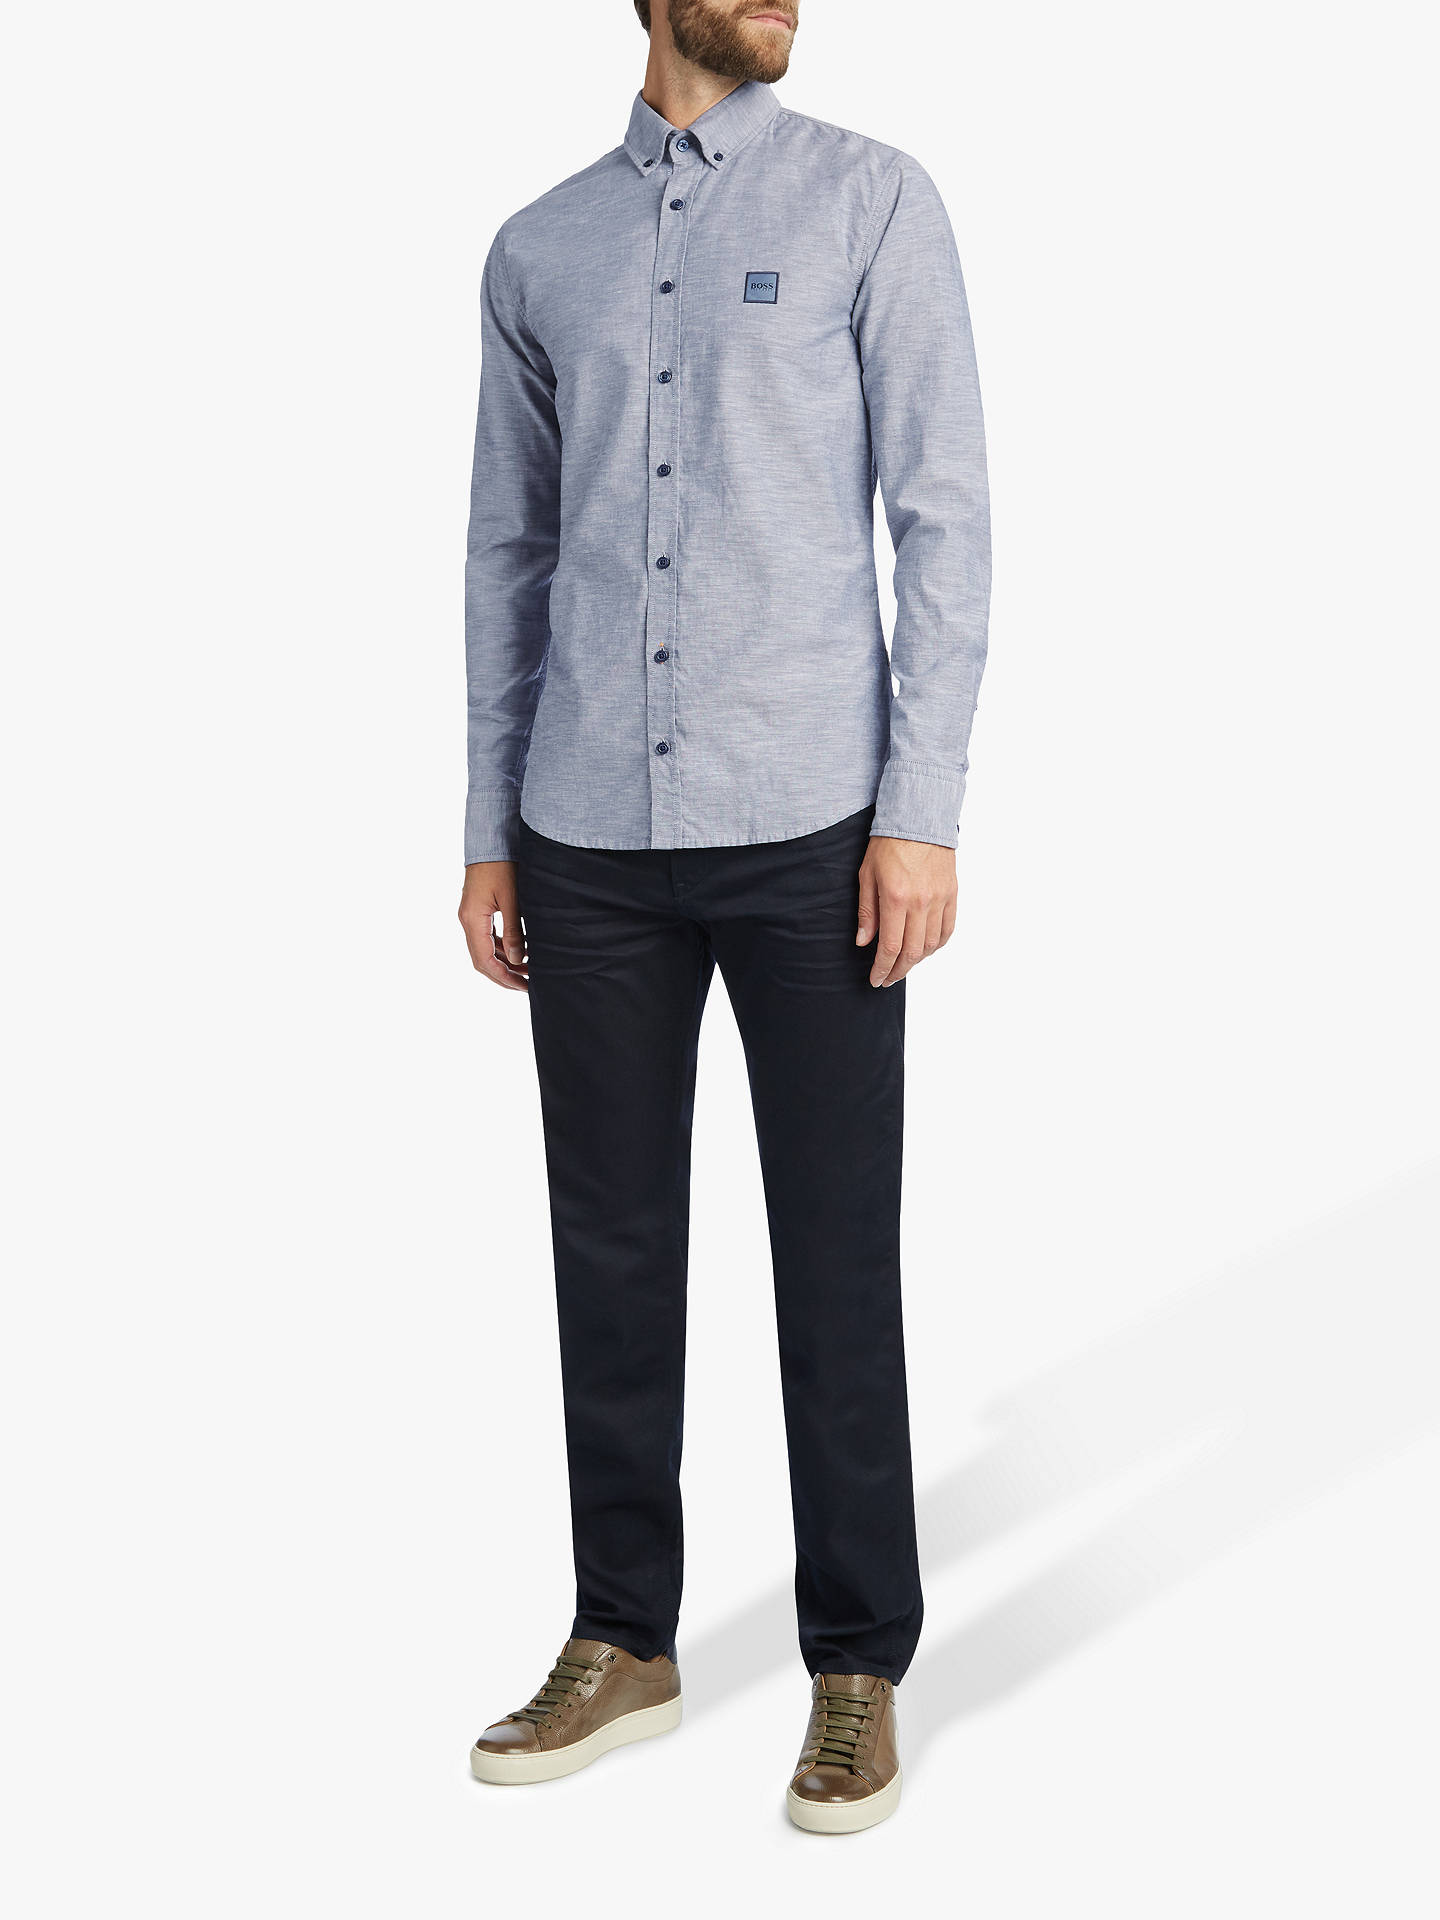 BuyBOSS Mabsoot Long Sleeve Shirt, Dark Blue, S Online at johnlewis.com